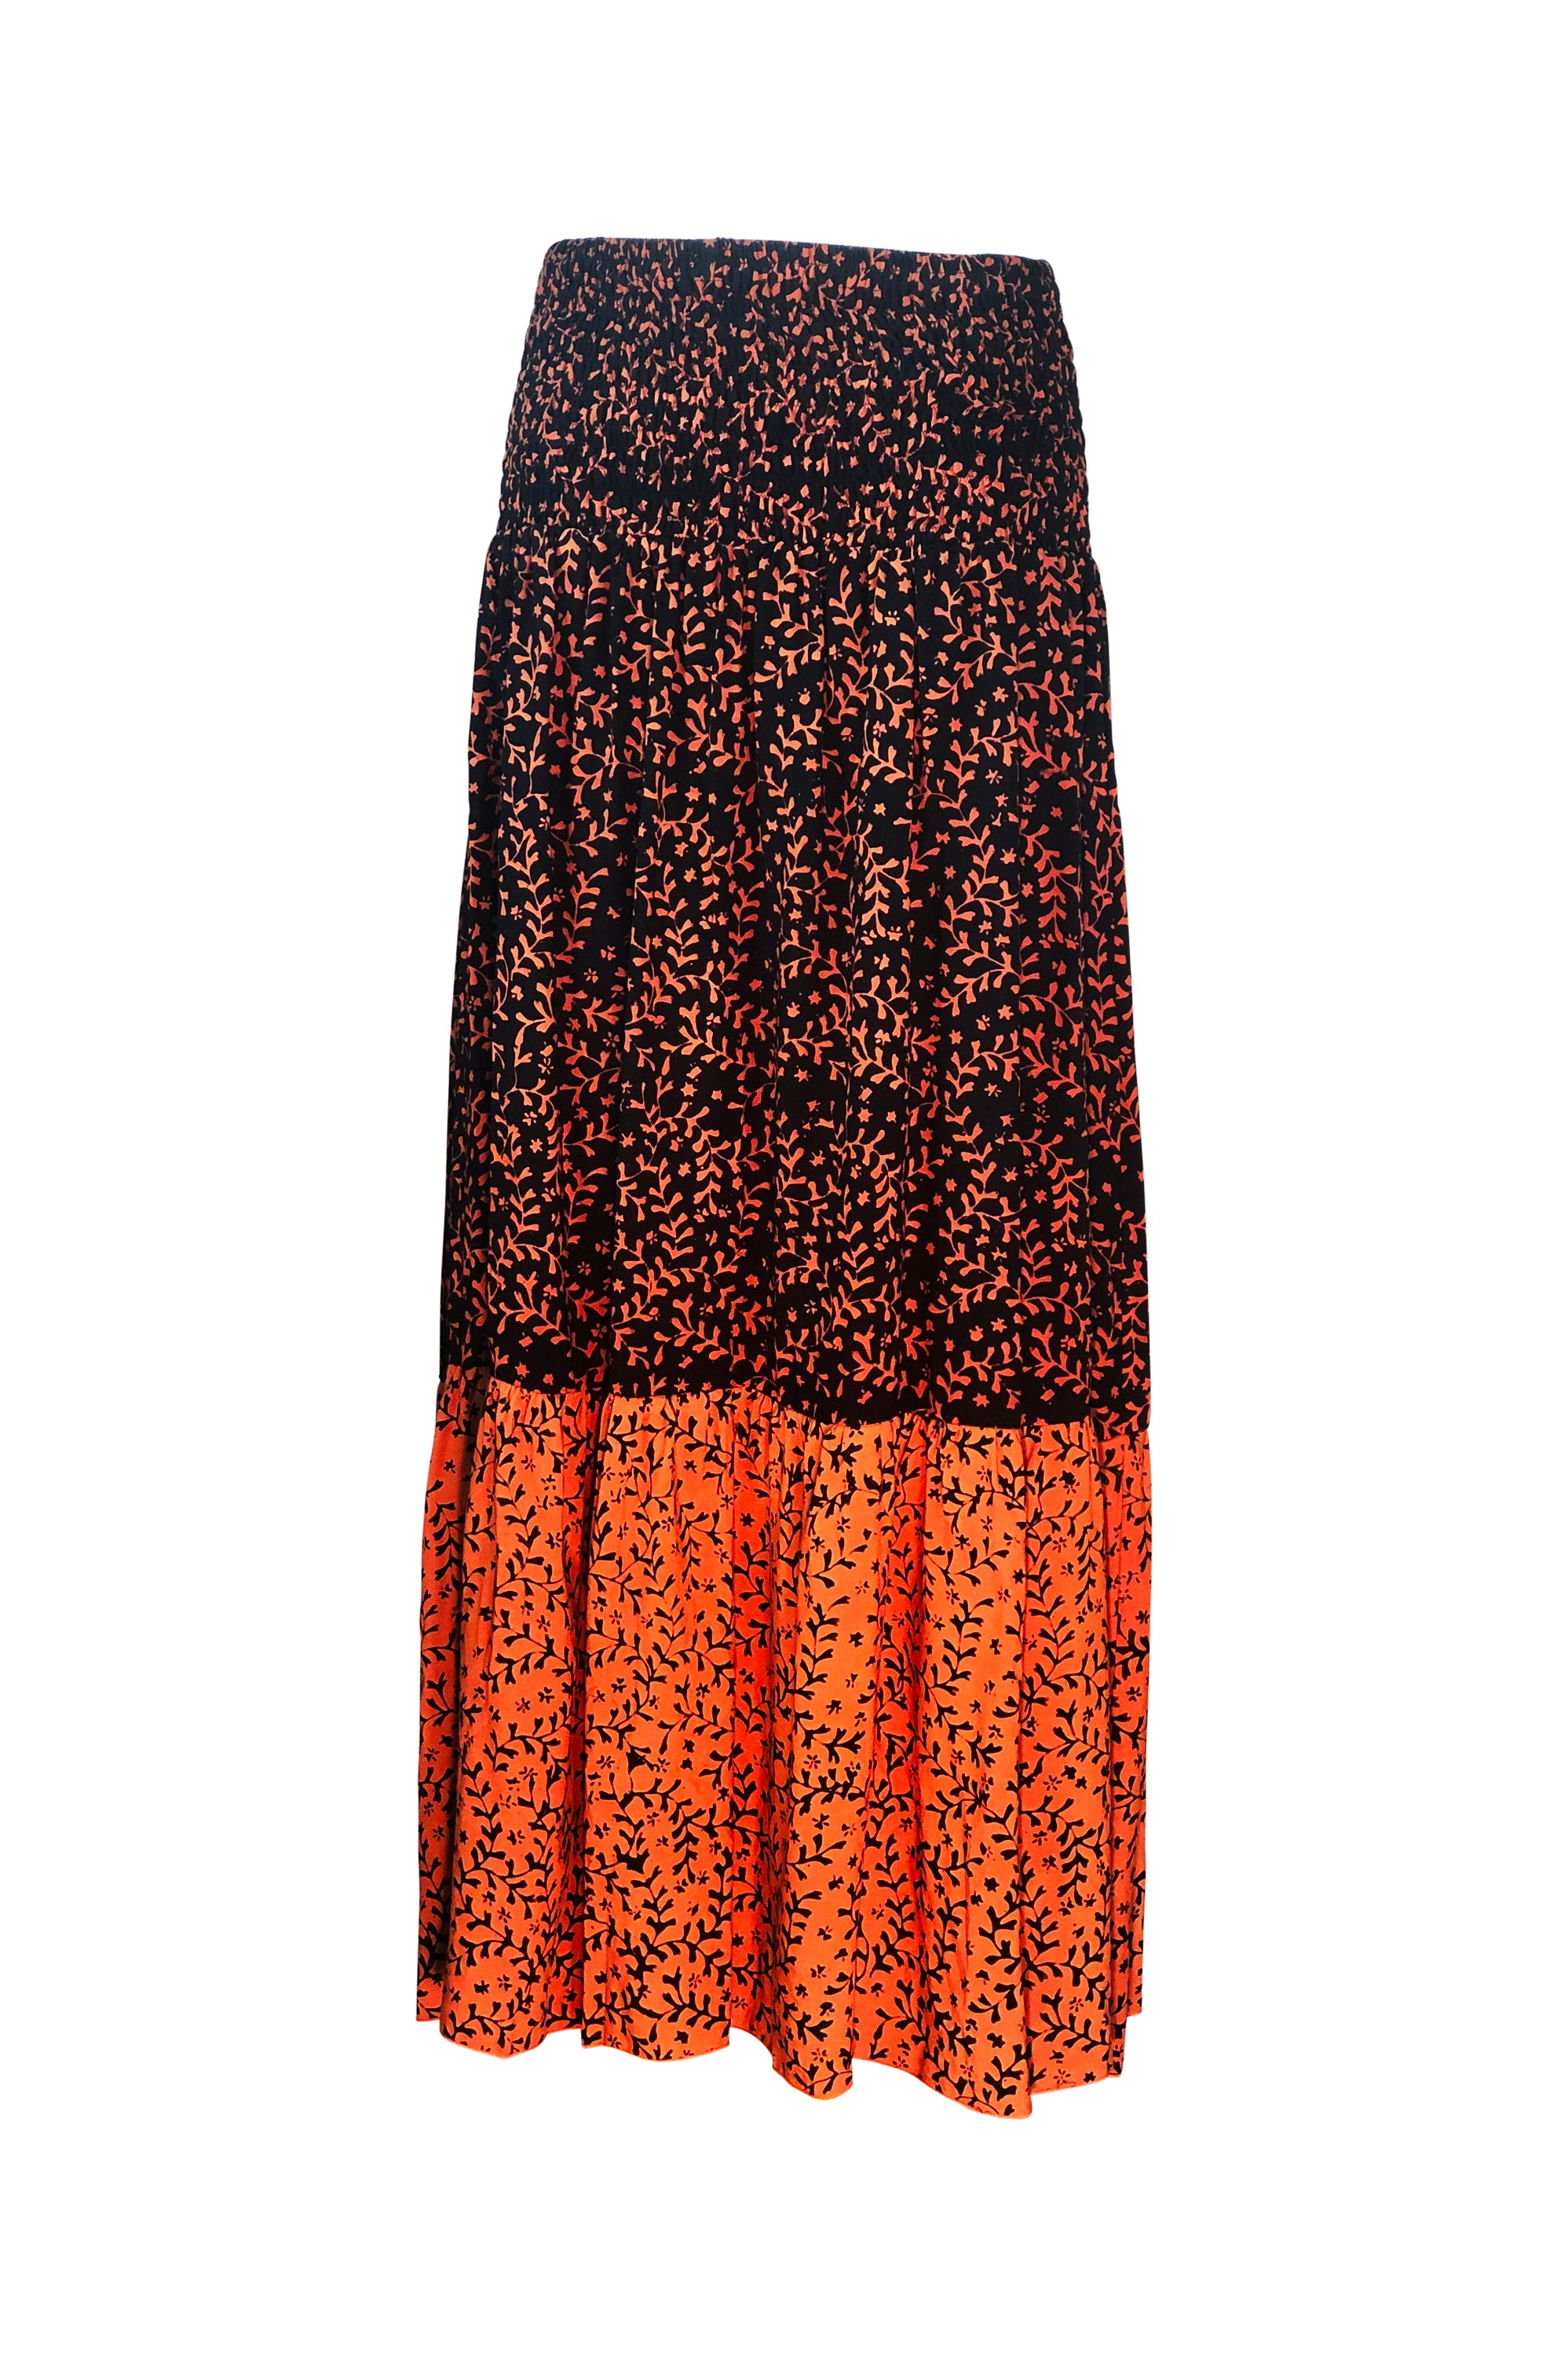 2 in 1 Maxi Skirt / Dress 🍮 Mixed Toffee - Saffron Road